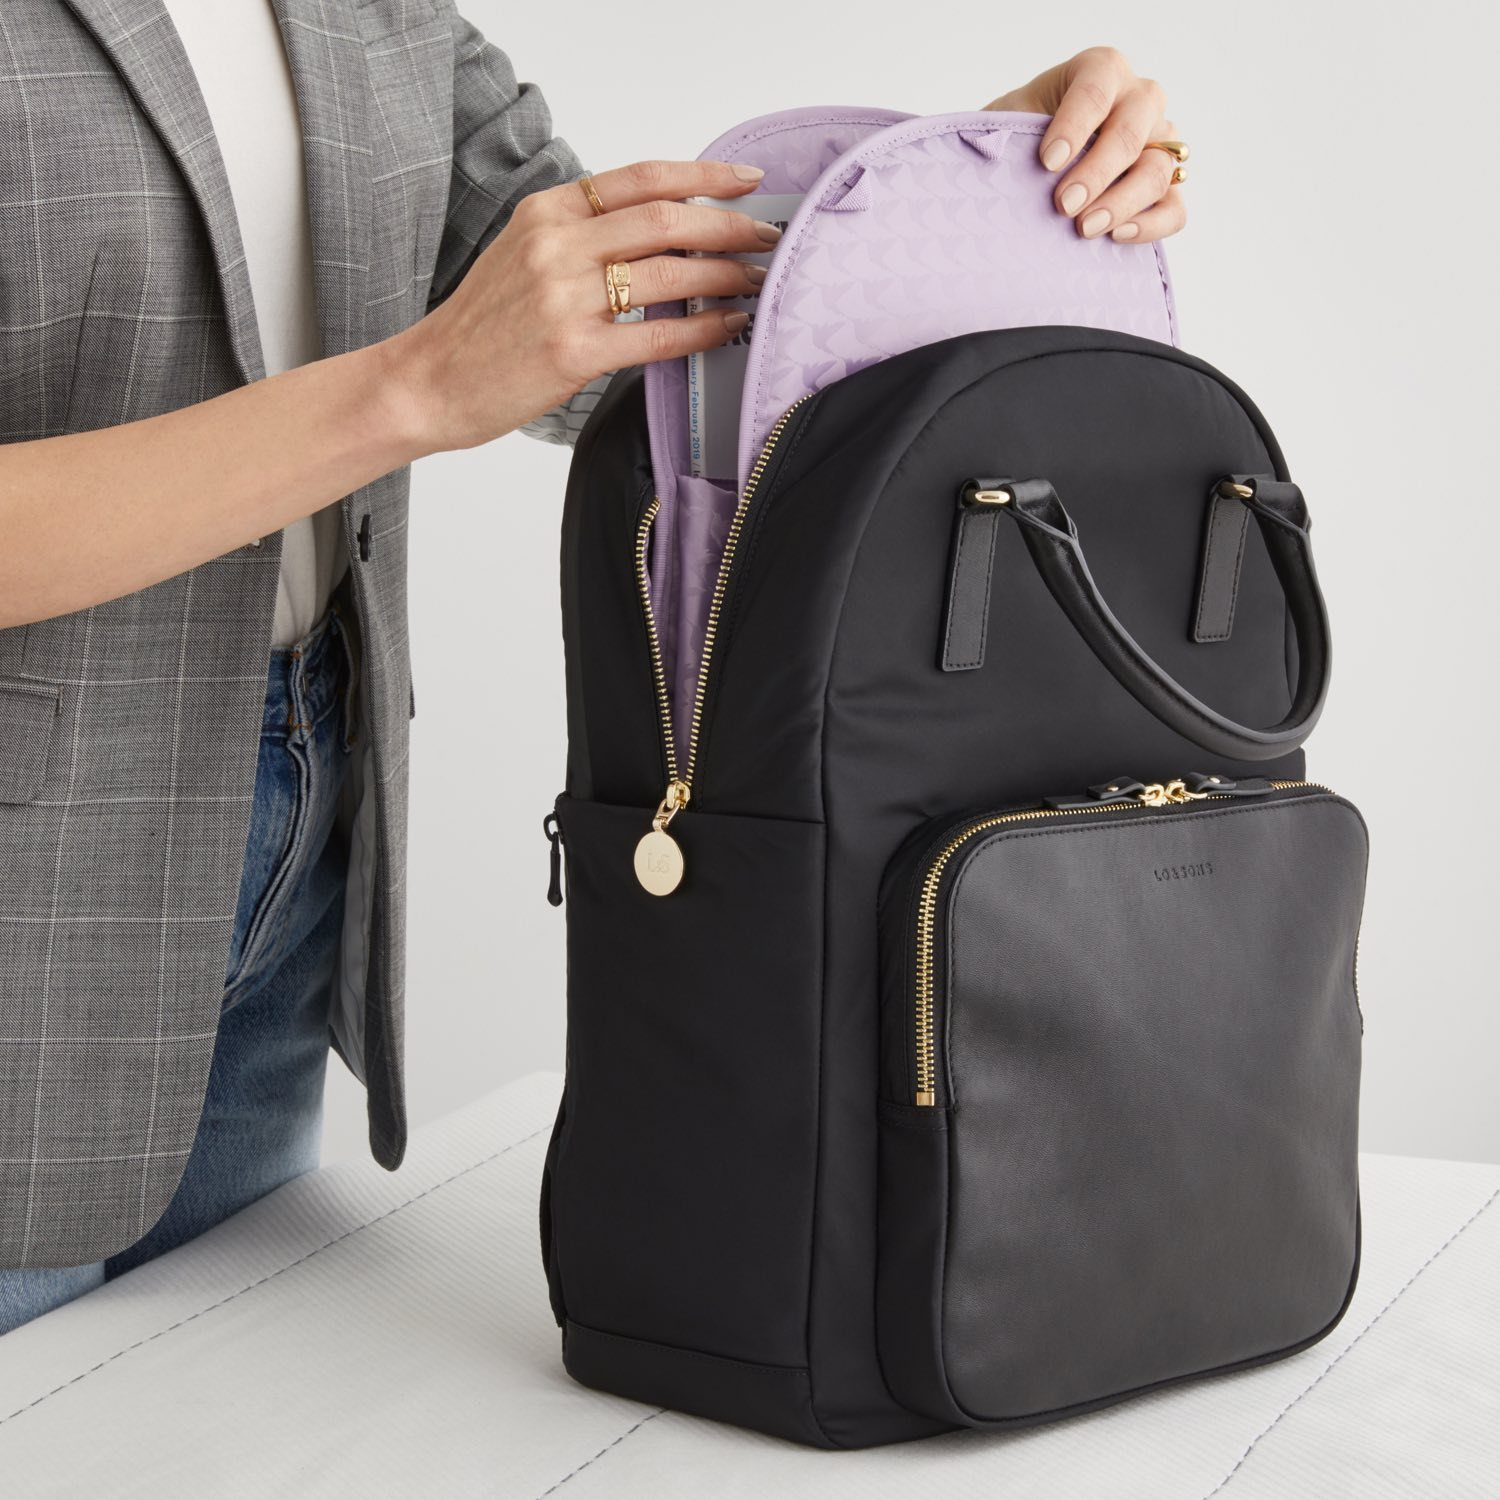 The Rowledge backpack by Lo and Sons